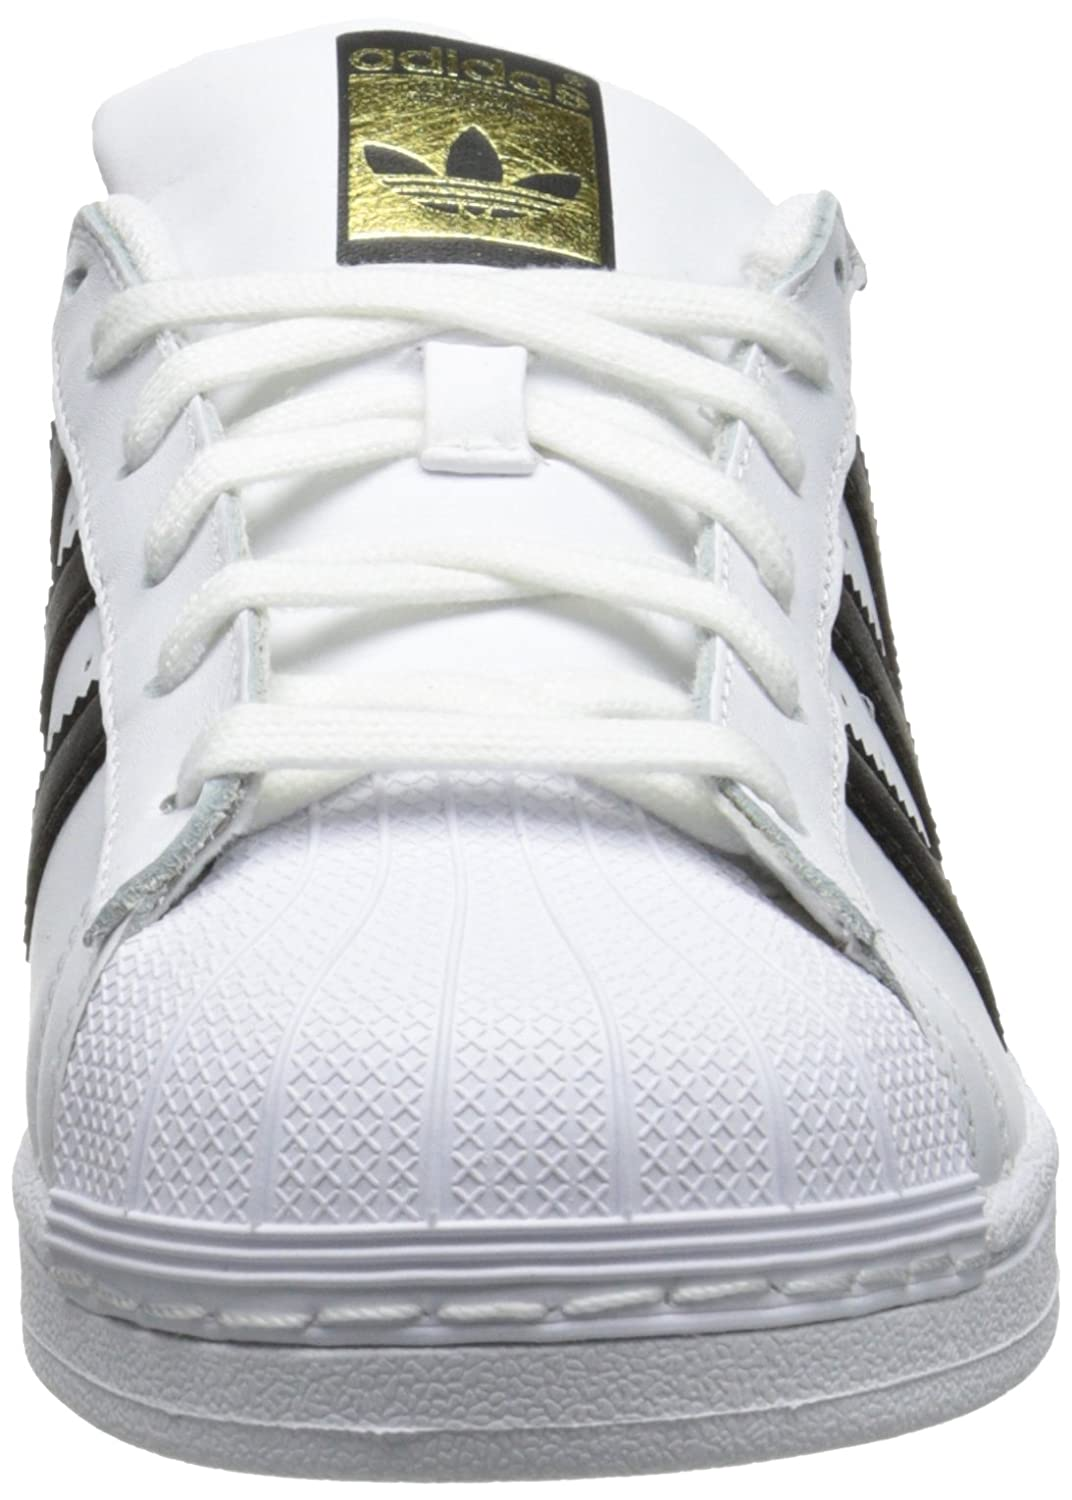 Amazon.com | adidas Originals Women's Superstar Shoes, White/Black/White, (8.5 M US) in FCR | Fashion Sneakers